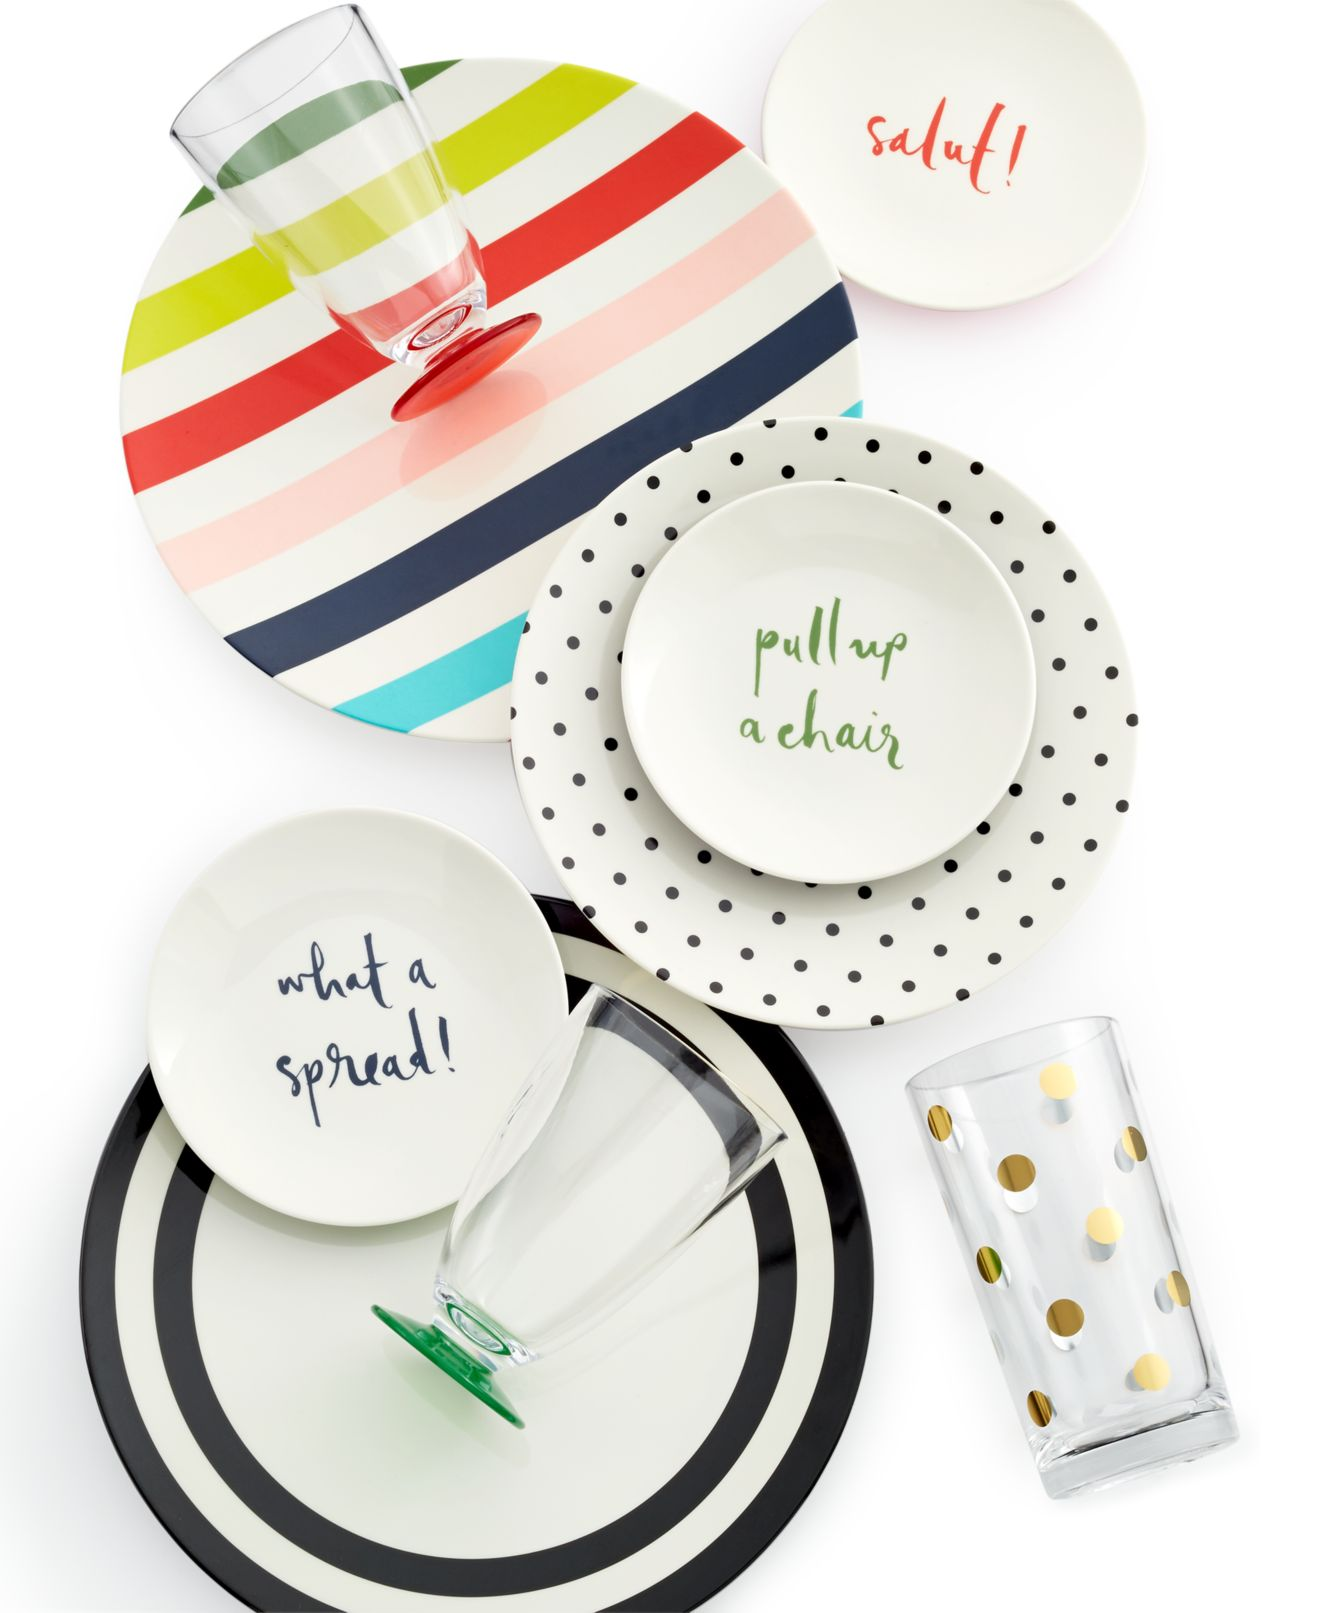 http://www1.macys.com/shop/dining-entertaining/kate-spade-casual-dinnerware?id=42667